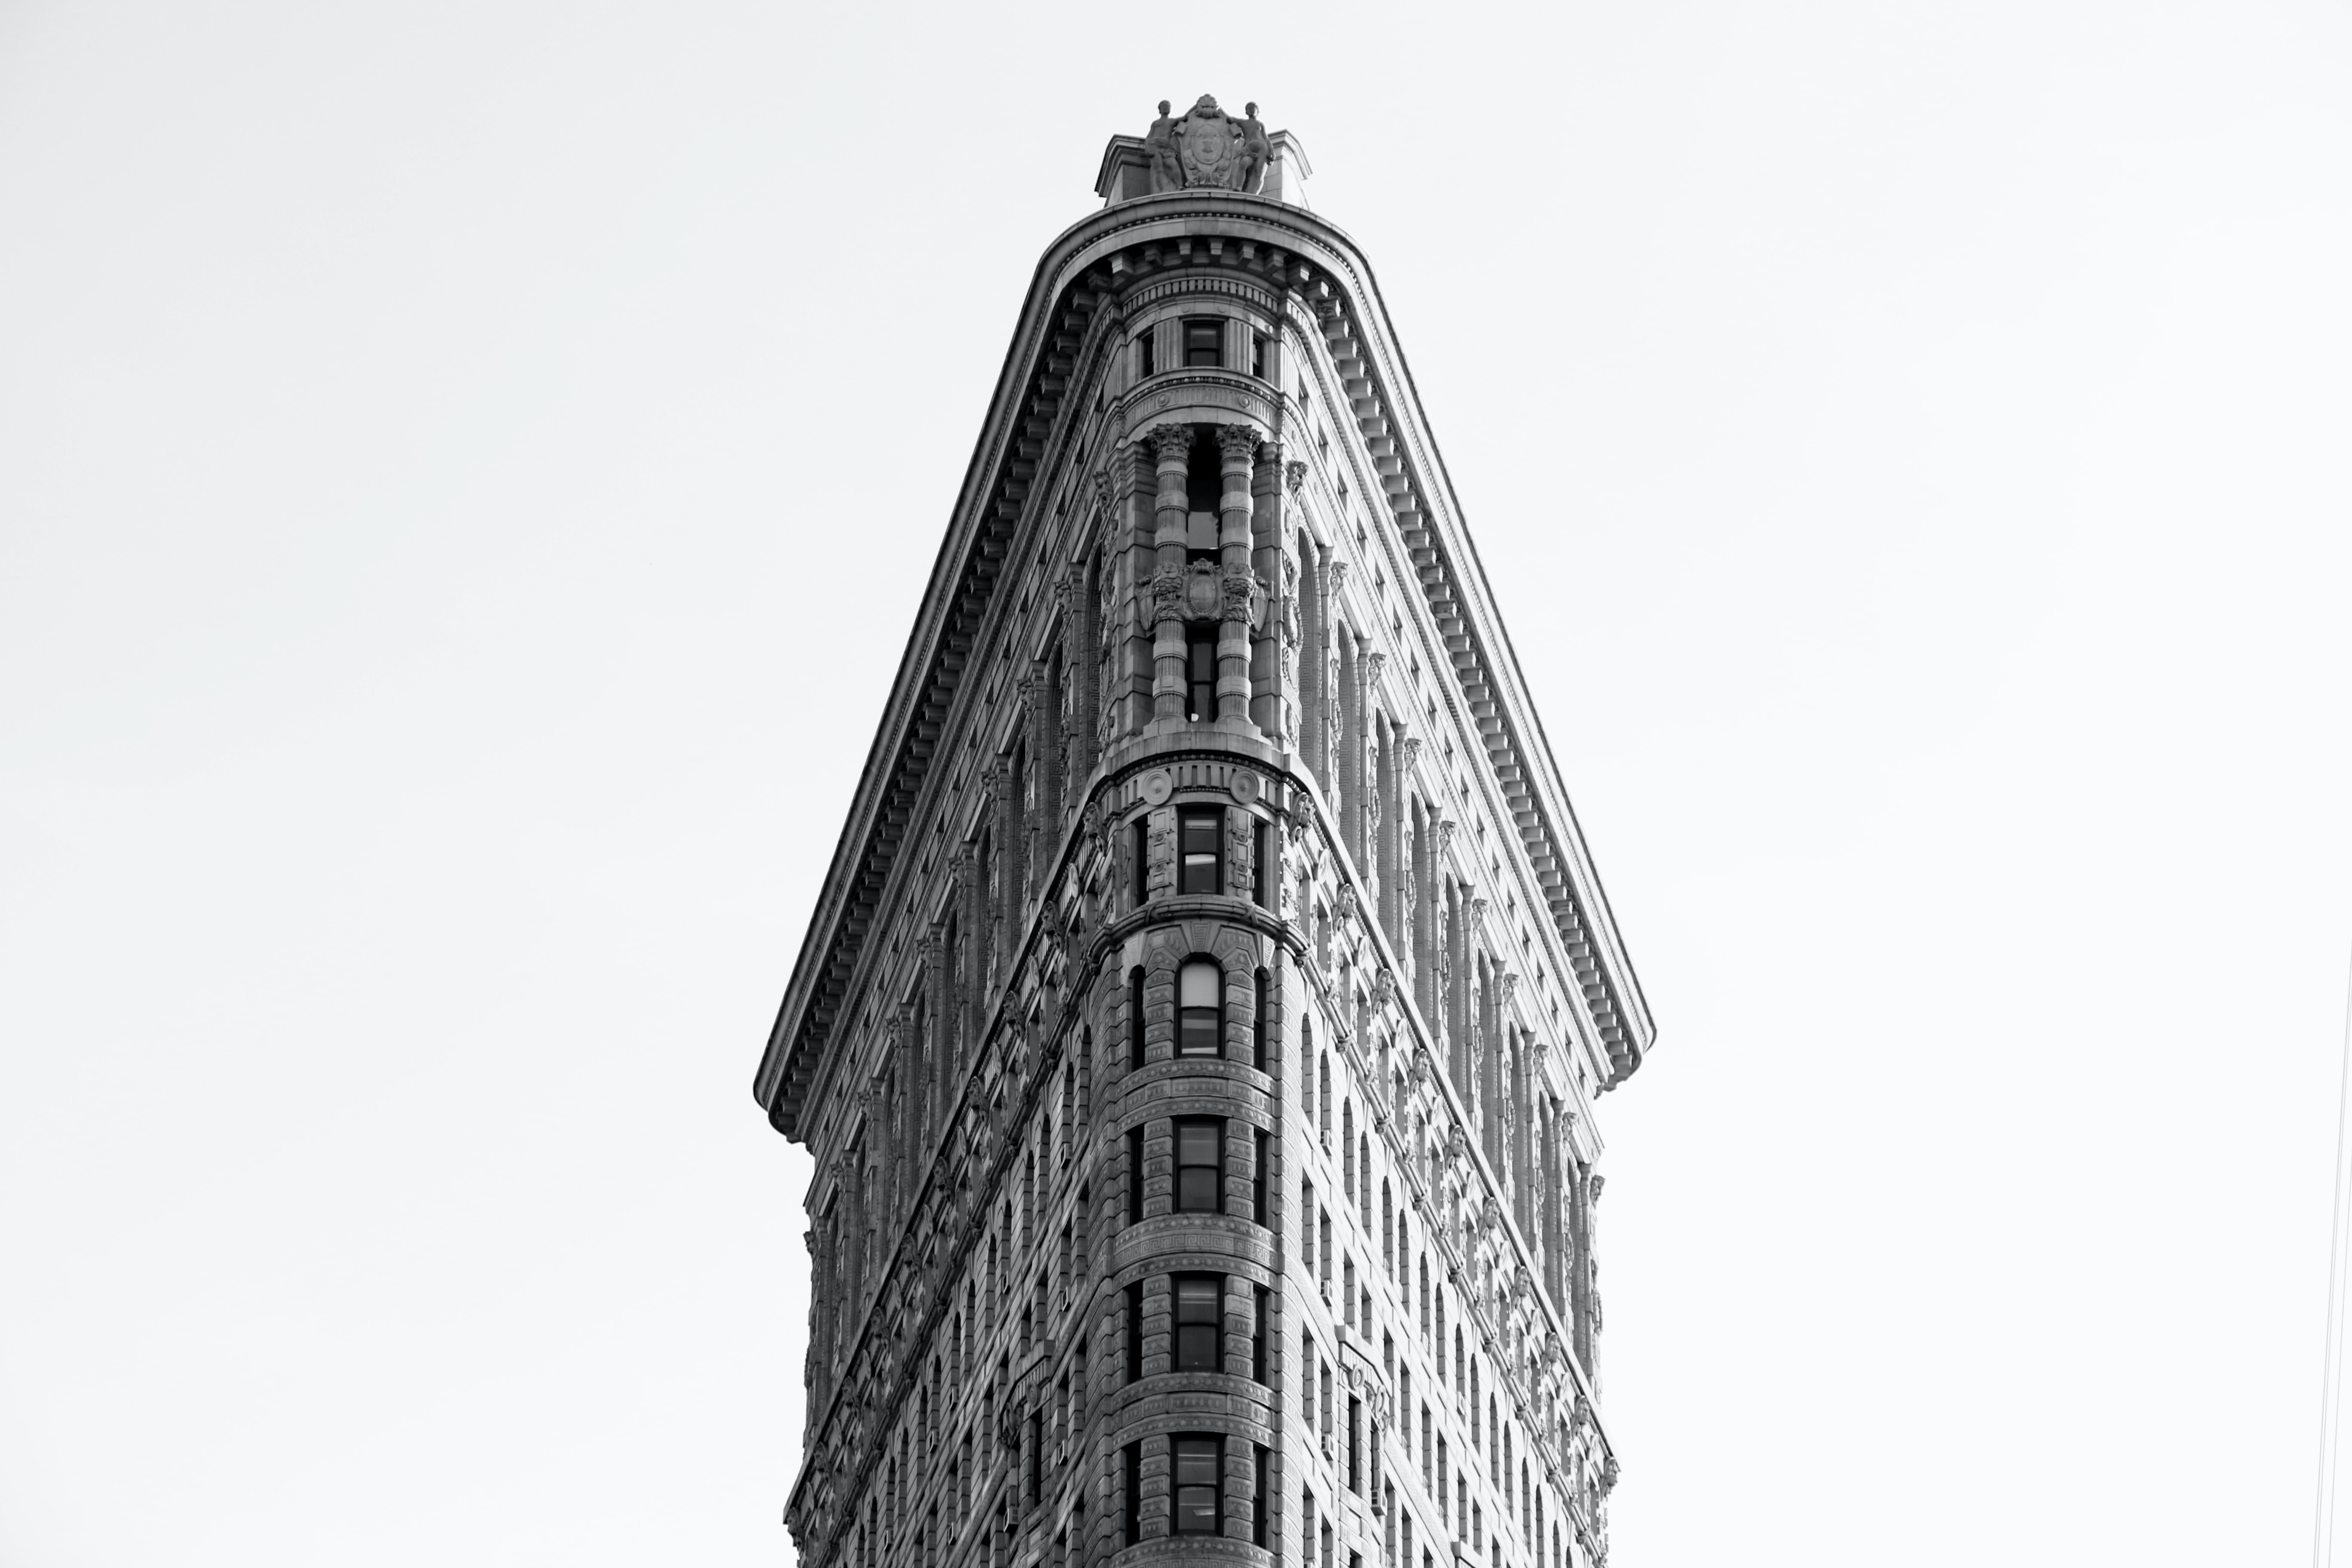 Black and white photo looking up at the Flatiron Building in New York City